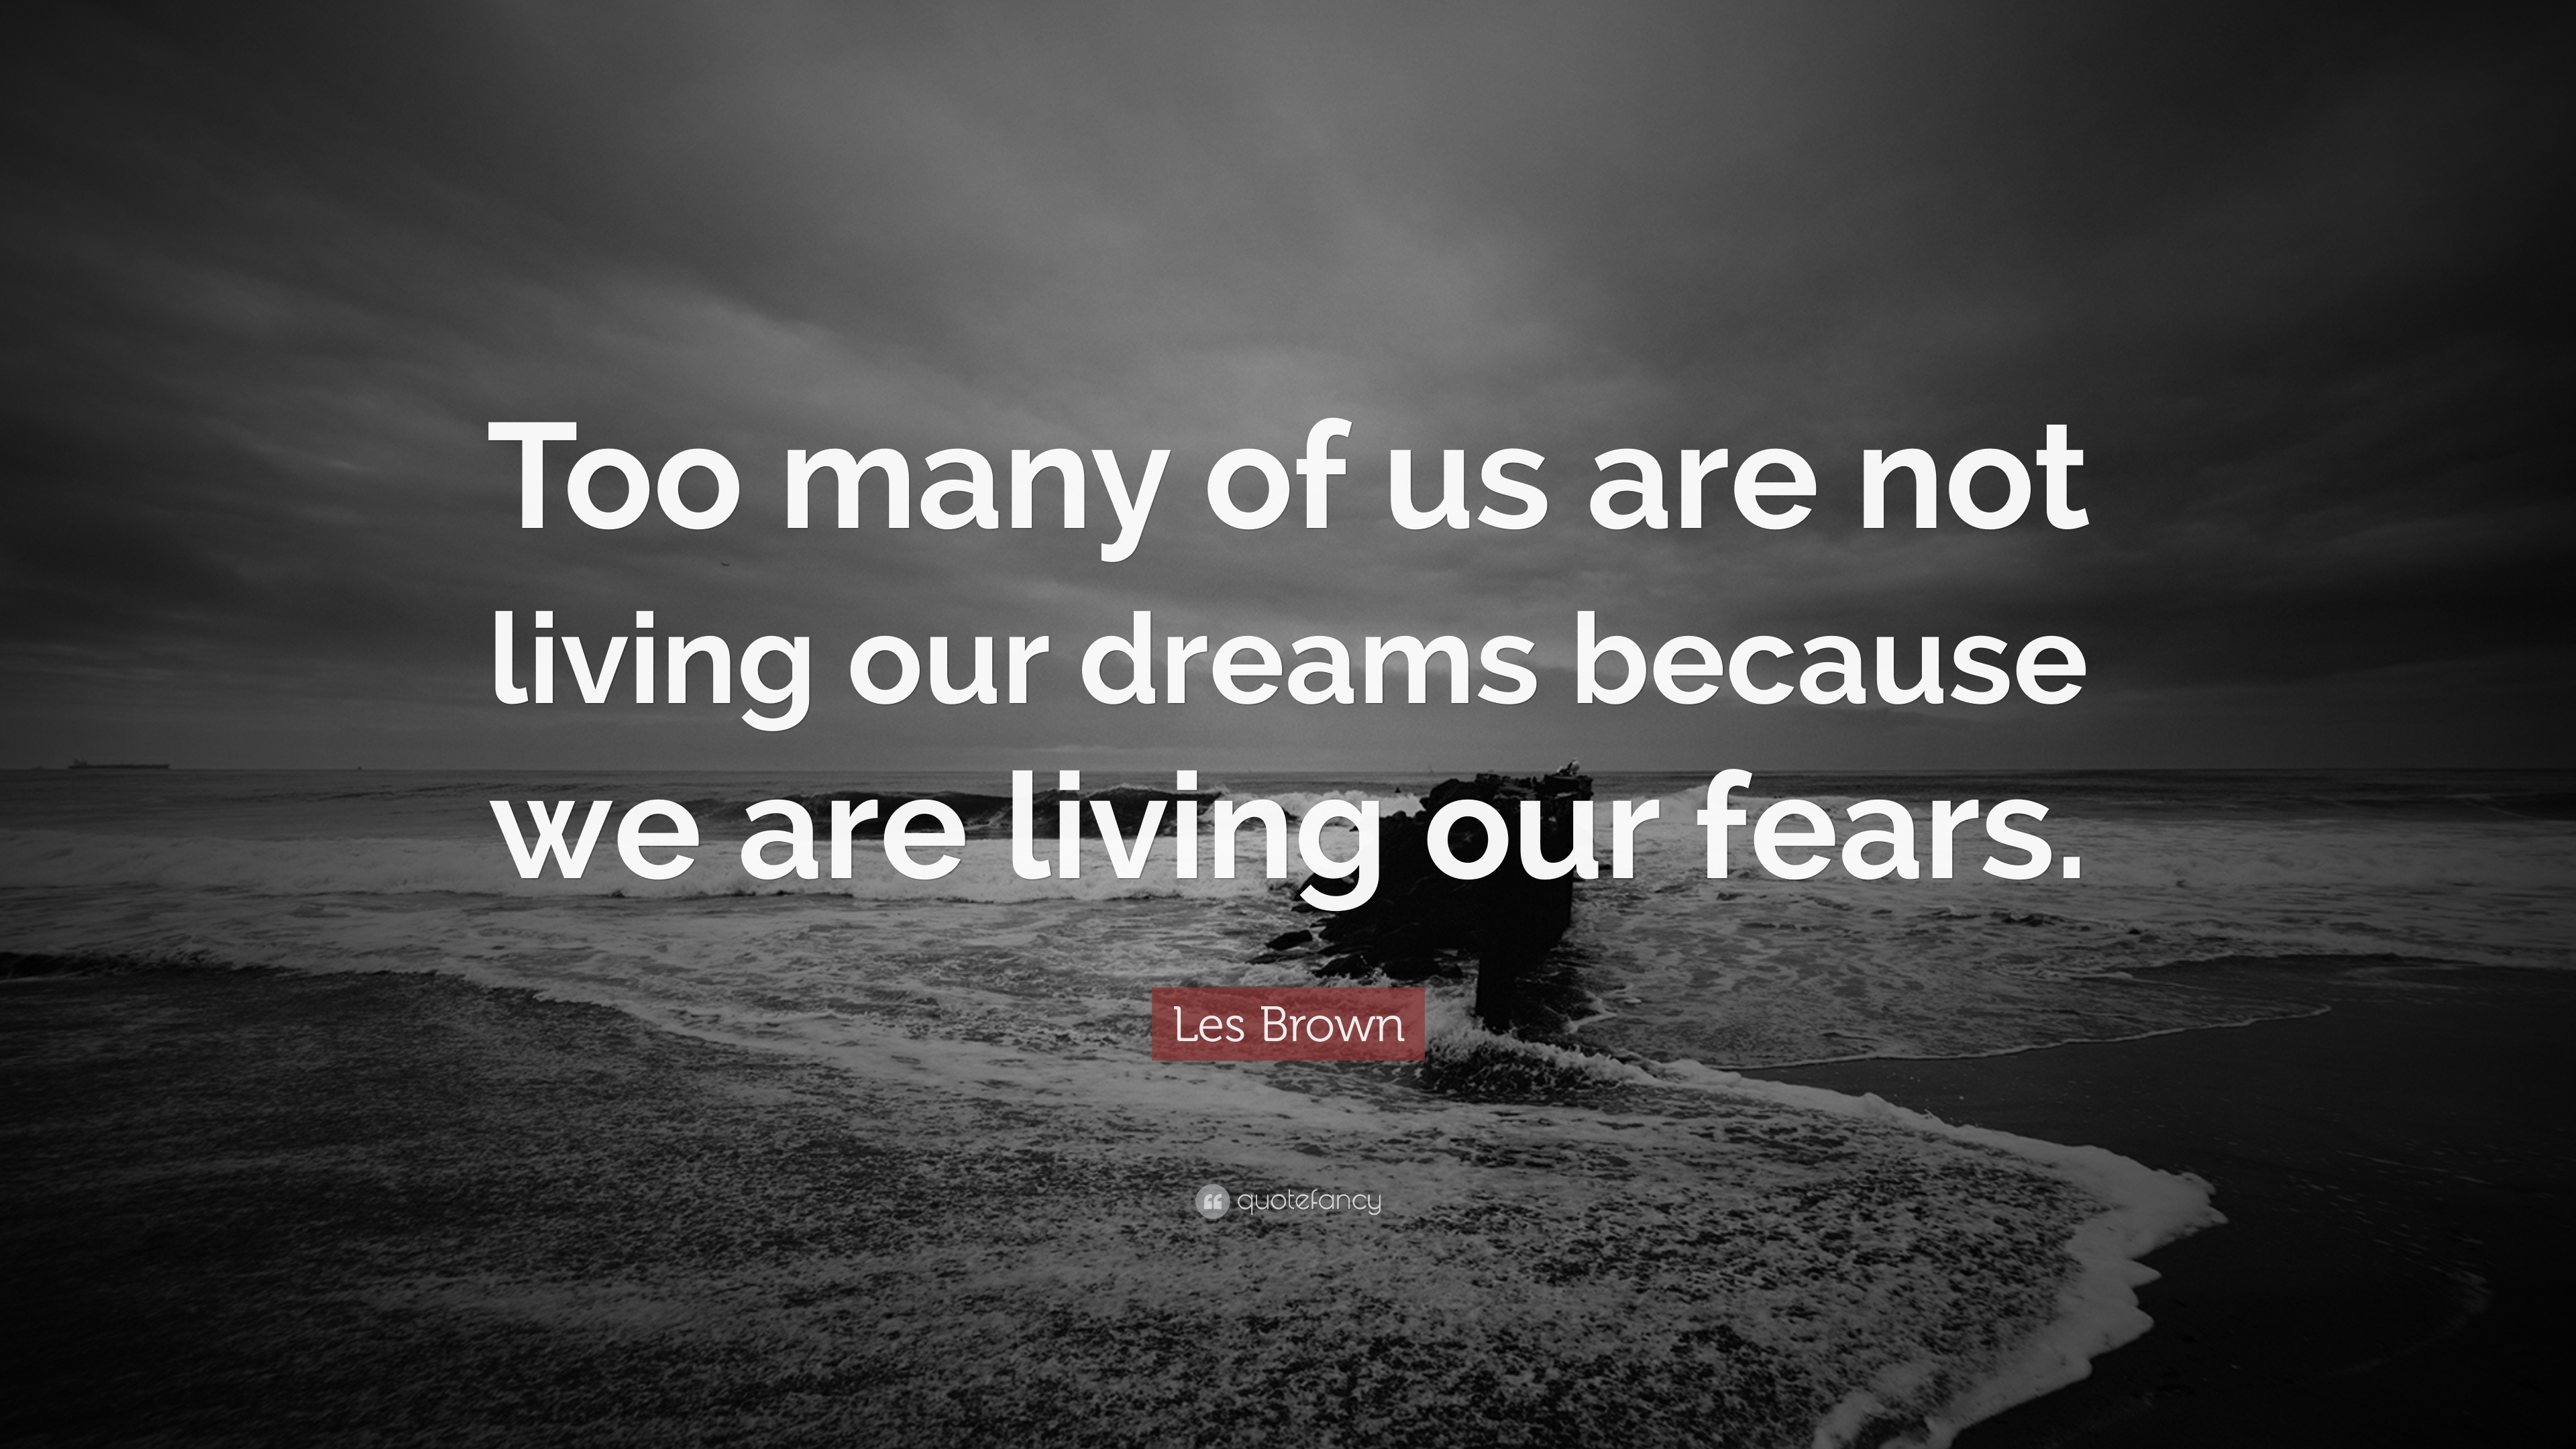 Brian Tracy Quotes Wallpaper Les Brown Quote Too Many Of Us Are Not Living Our Dreams